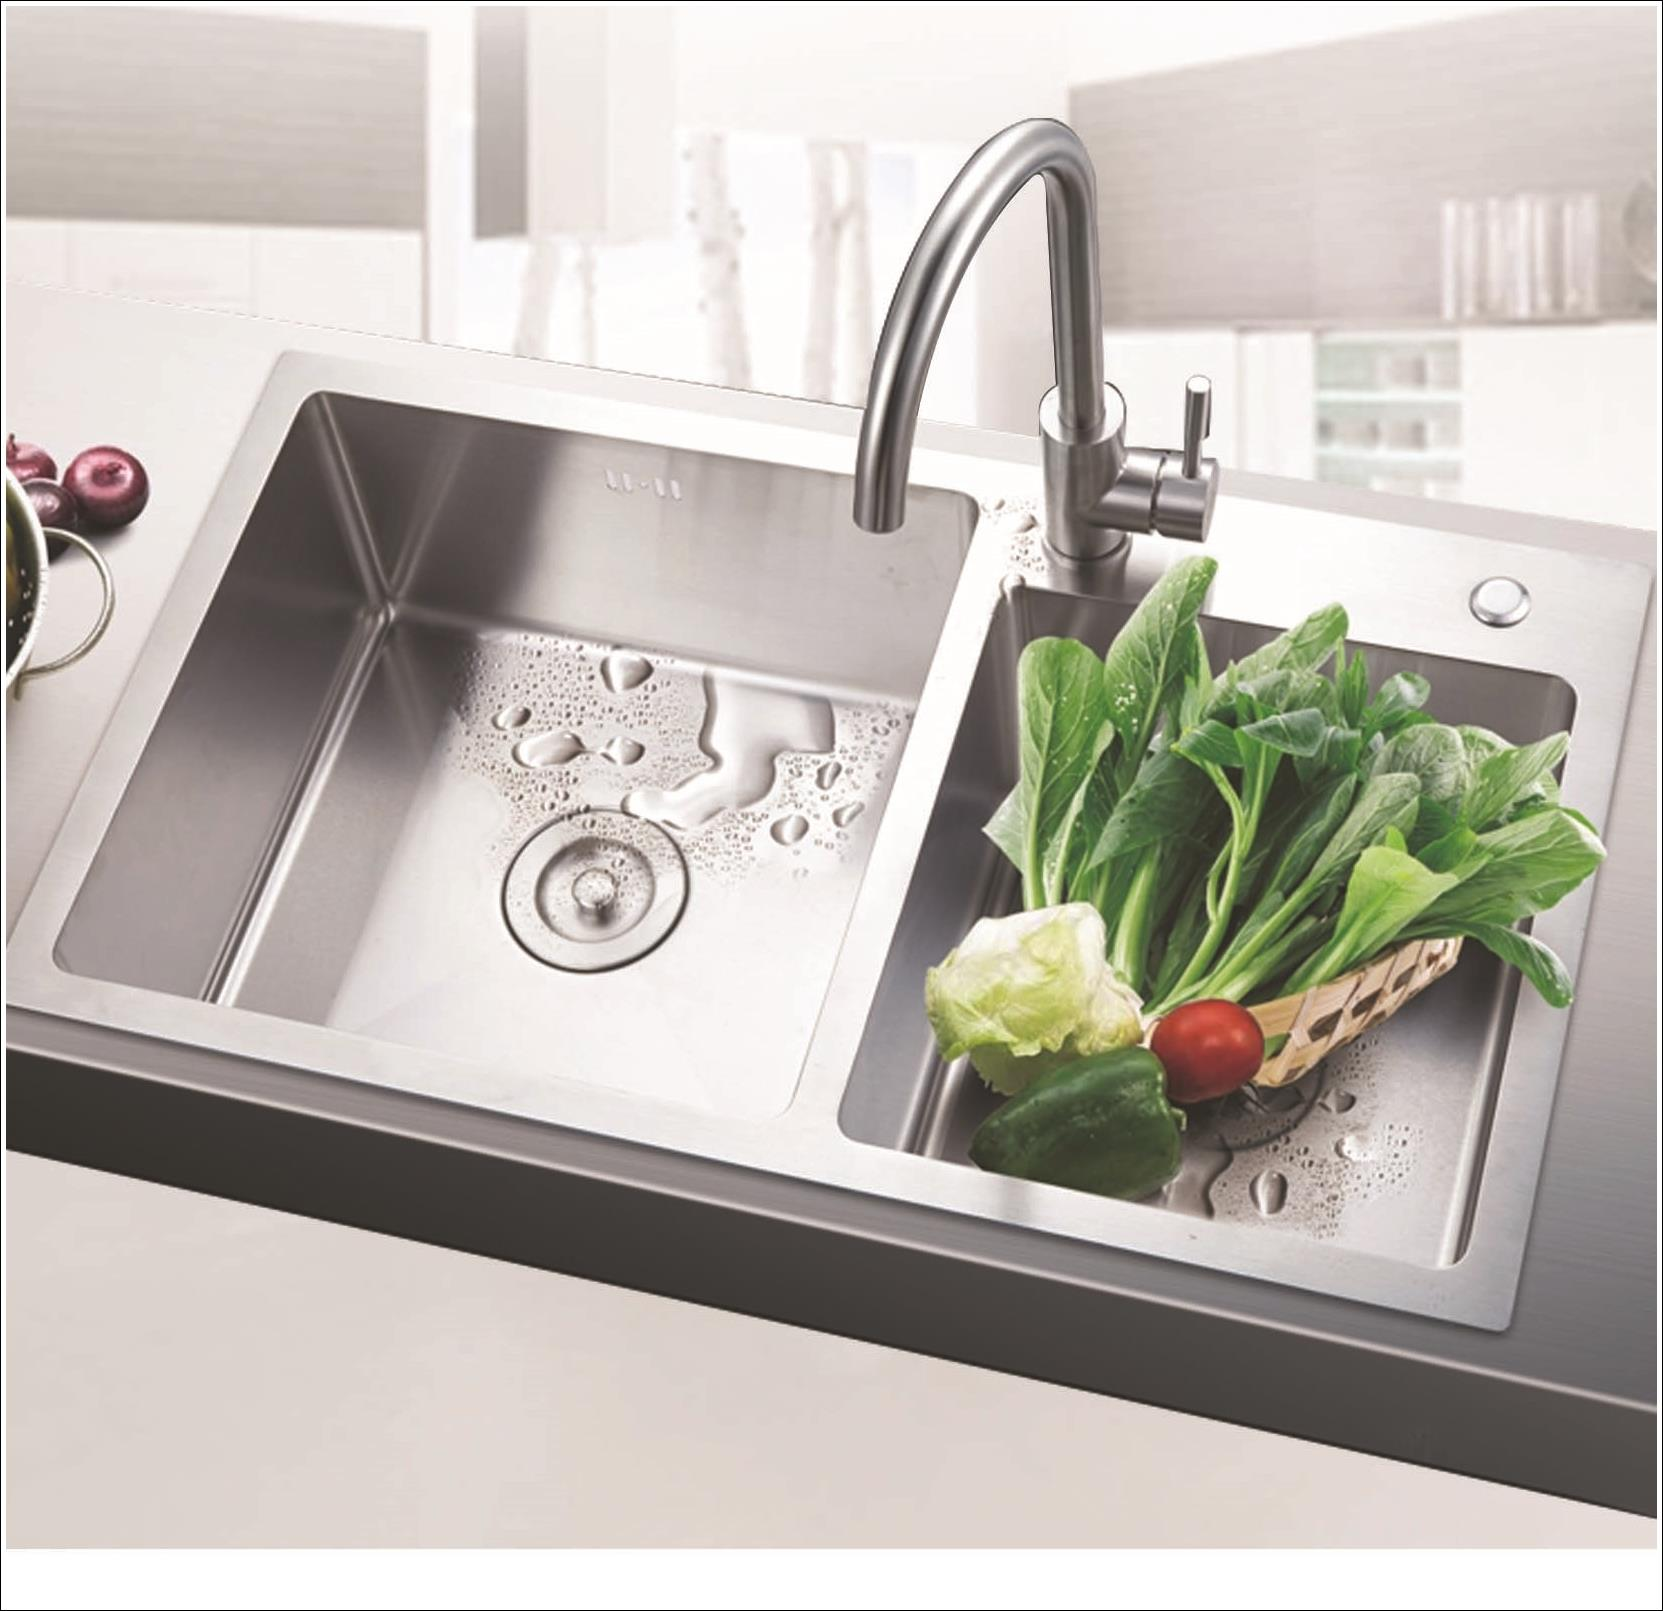 Sell kitchen sink double room esca from indonesia by vr sanitarycheap price